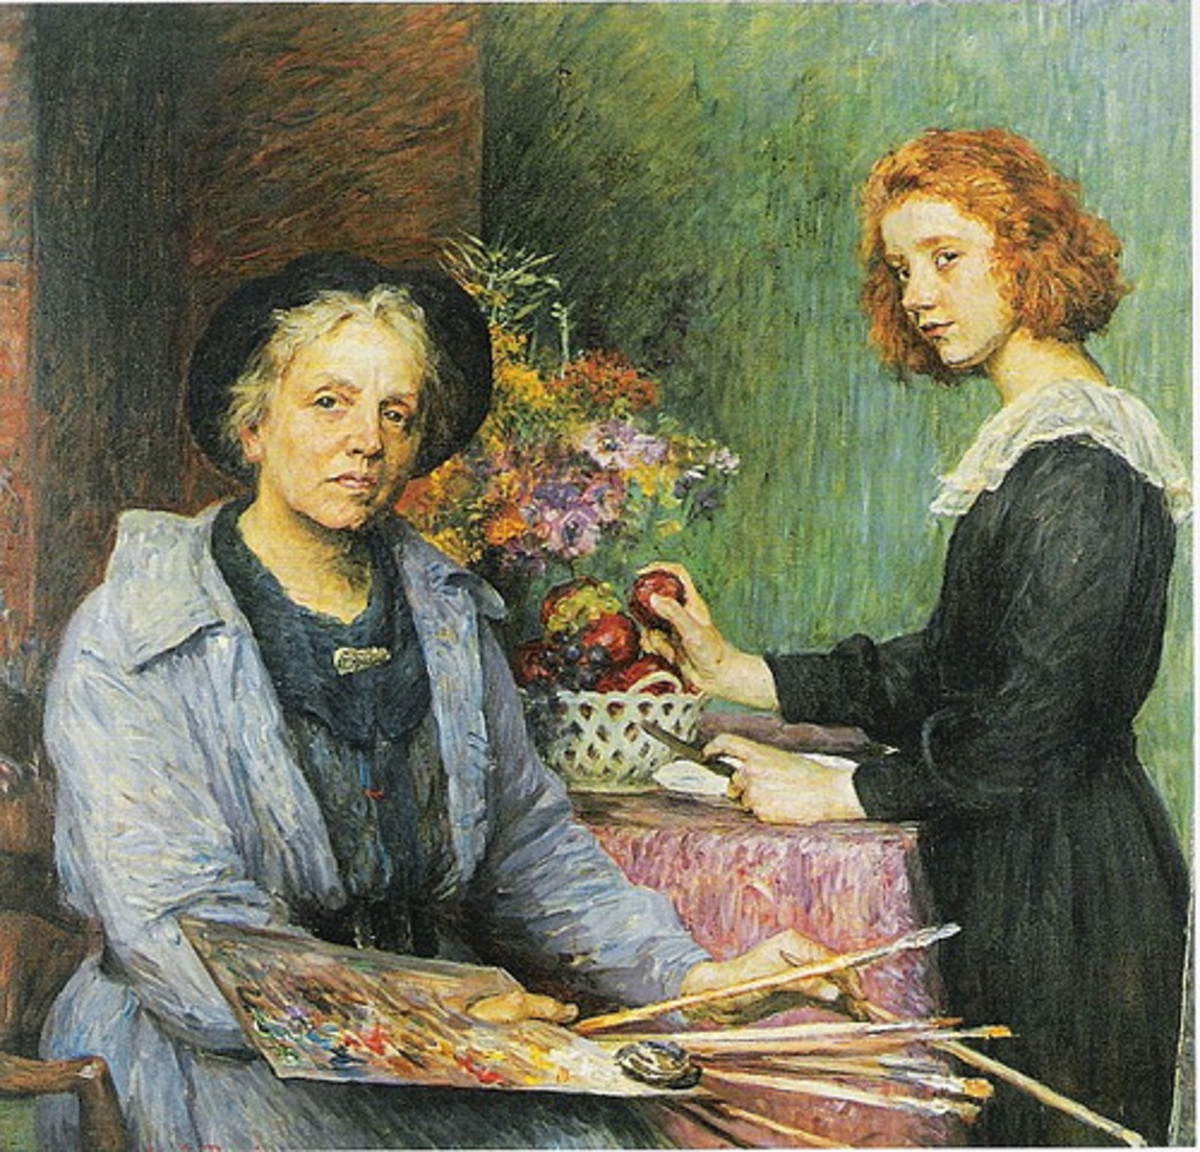 The Artist and her Model Geneva (1910) is in the public domain in the United States and those countries with a copyright term of life of the author plus 70 years or less.